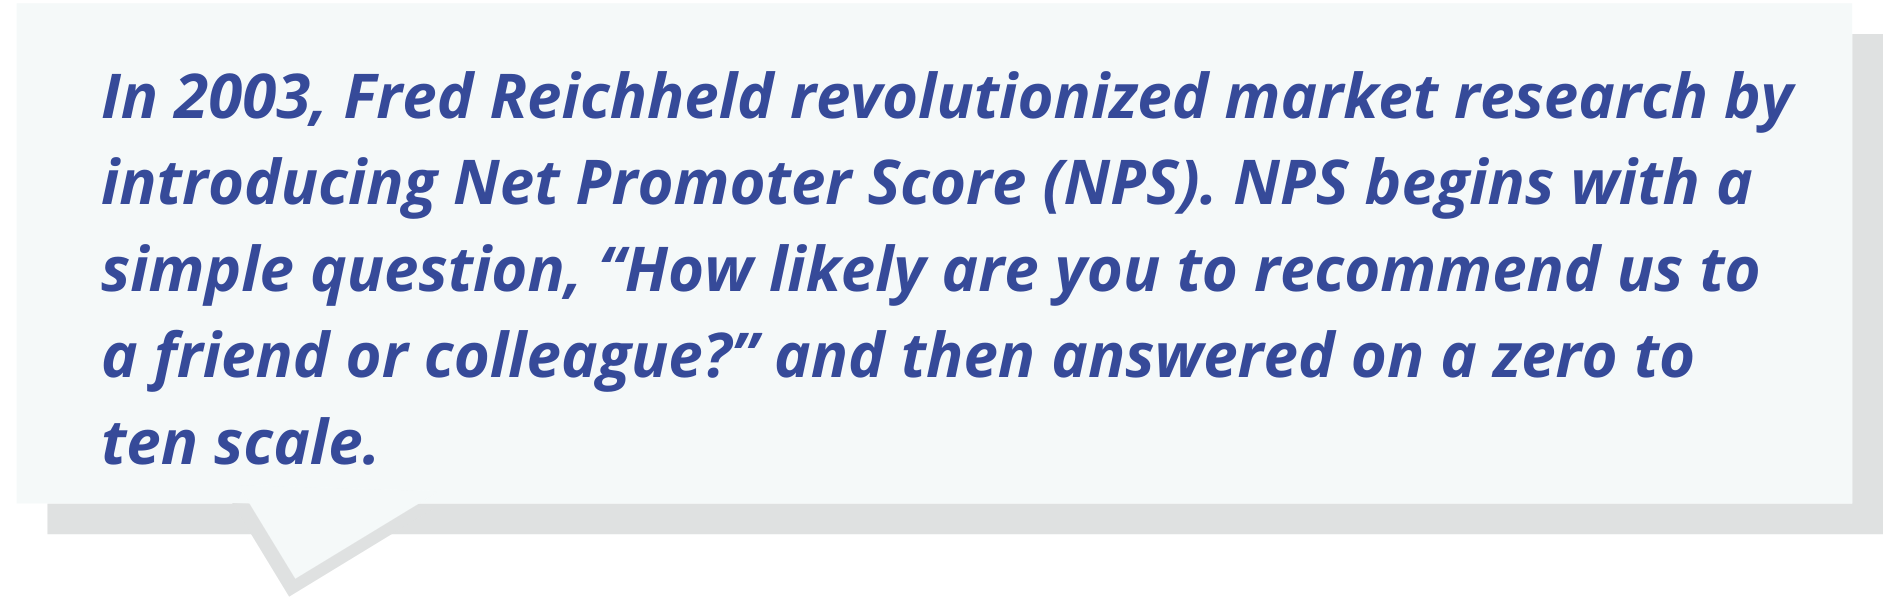 "In 2003, Fred Reichheld revolutionized market research by introducing Net Promoter Score (NPS). NPS begins with a simple question, ""How likely are you to recommend us to a friend or colleague?"" and then answered on a zero to ten scale."